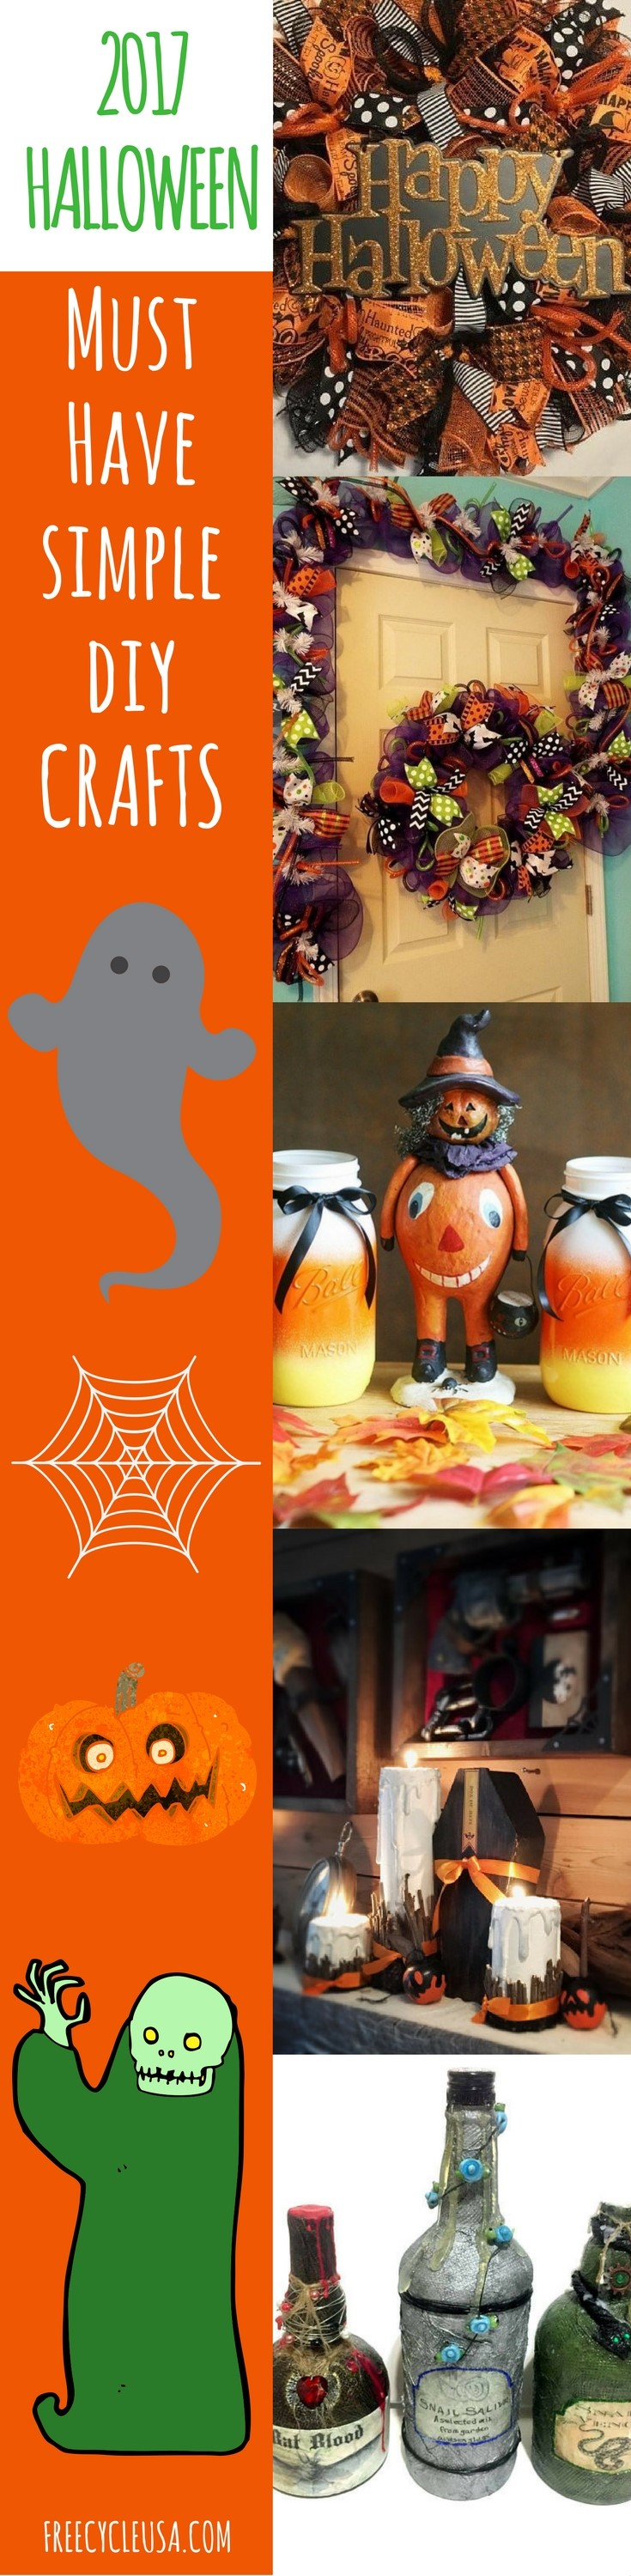 My 5 Best Diy Halloween Decorations For 2017 Freecycle Usa